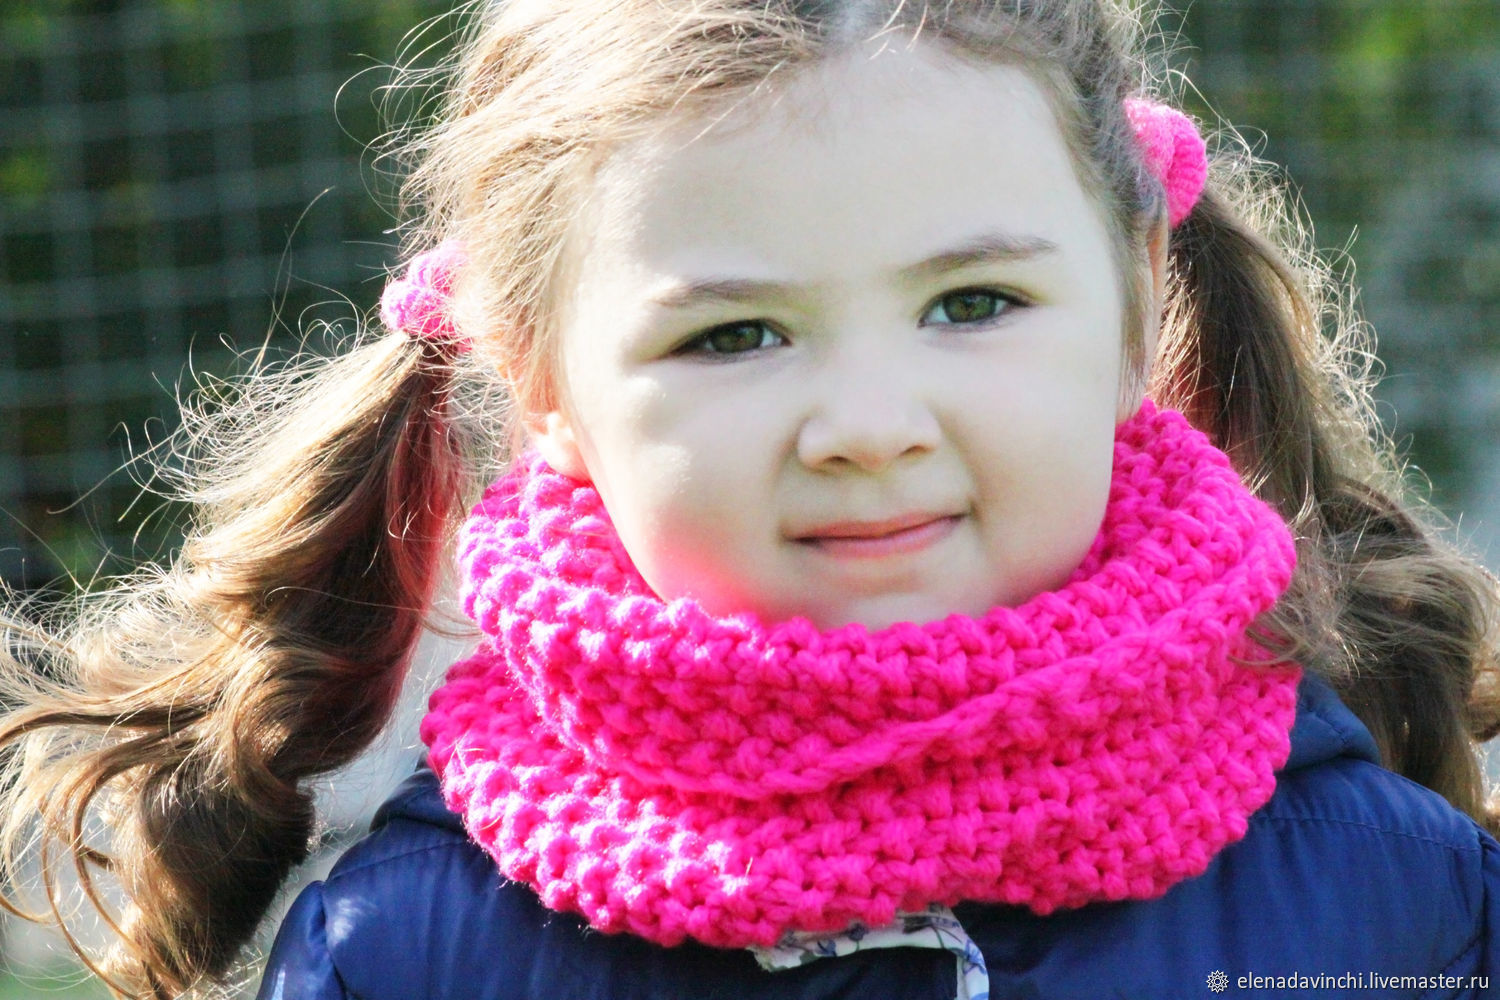 Snood for girls knitted 'Neon', Snudy1, Moscow,  Фото №1